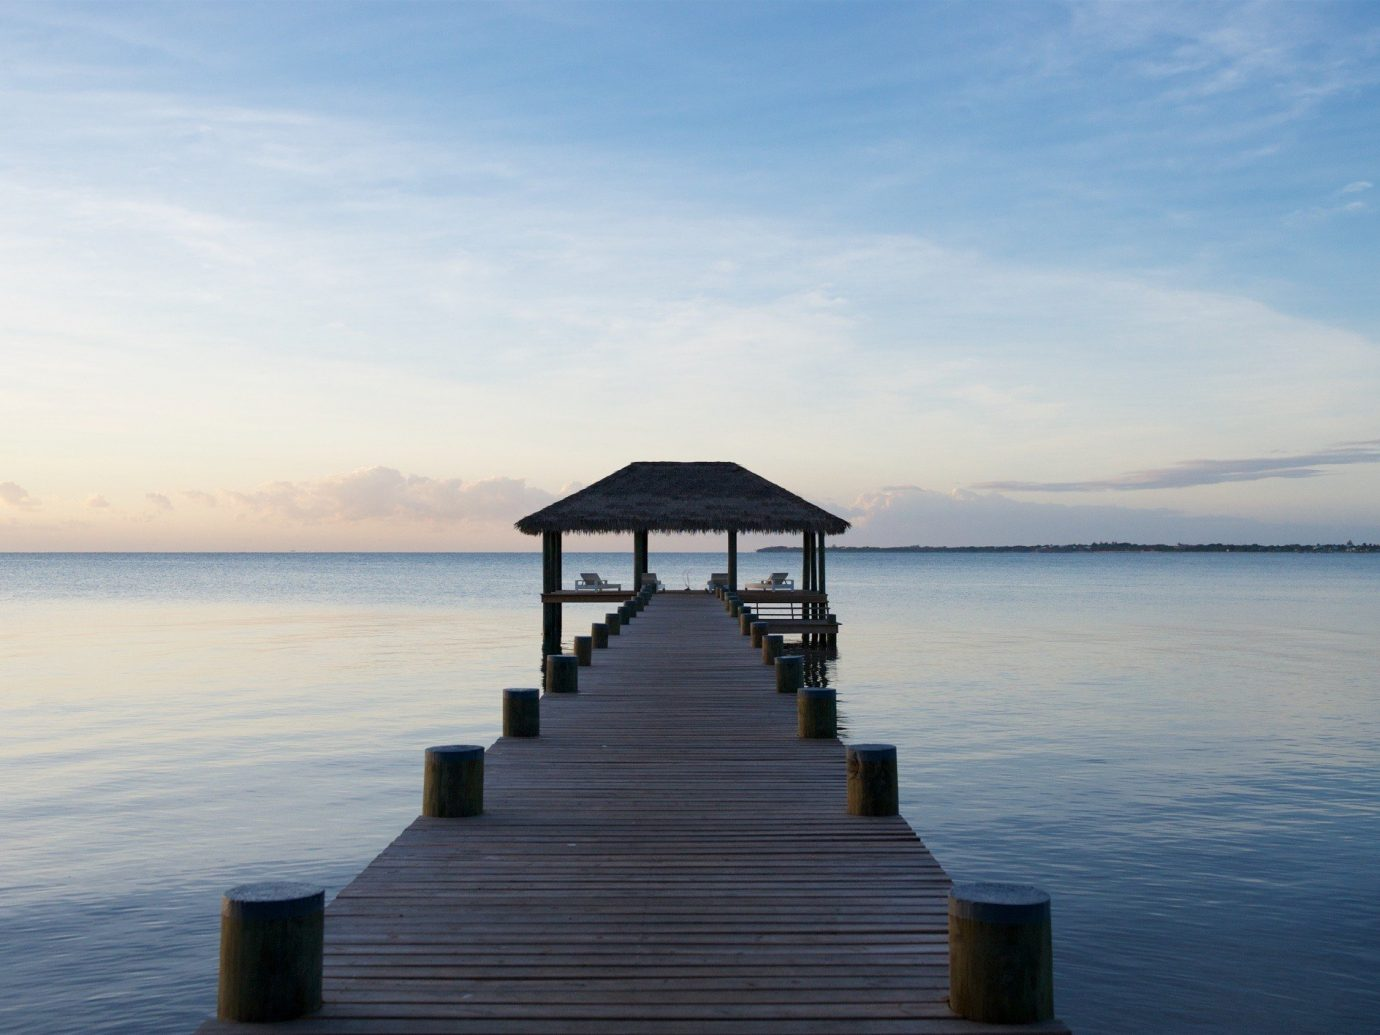 Trip Ideas water outdoor sky pier scene Sea Lake horizon shore body of water Ocean reflection vacation morning Coast bay Beach dusk dock Sunset day distance Island